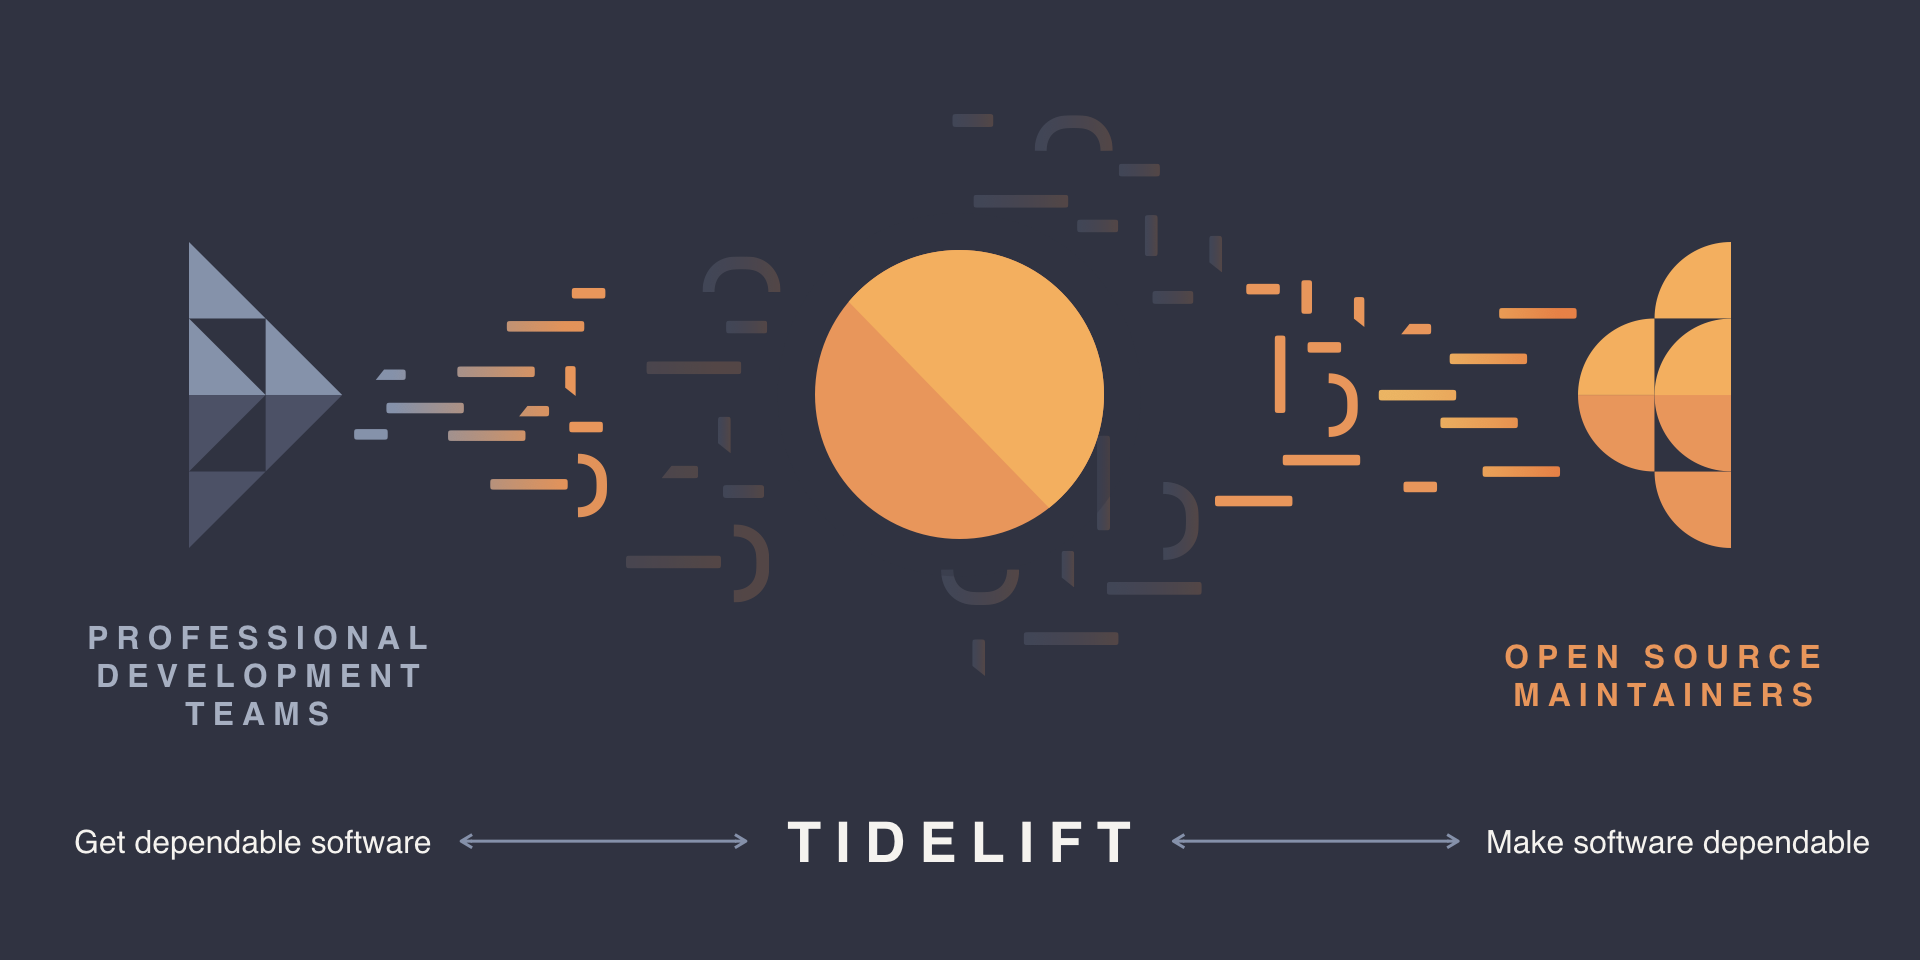 The Tidelift network